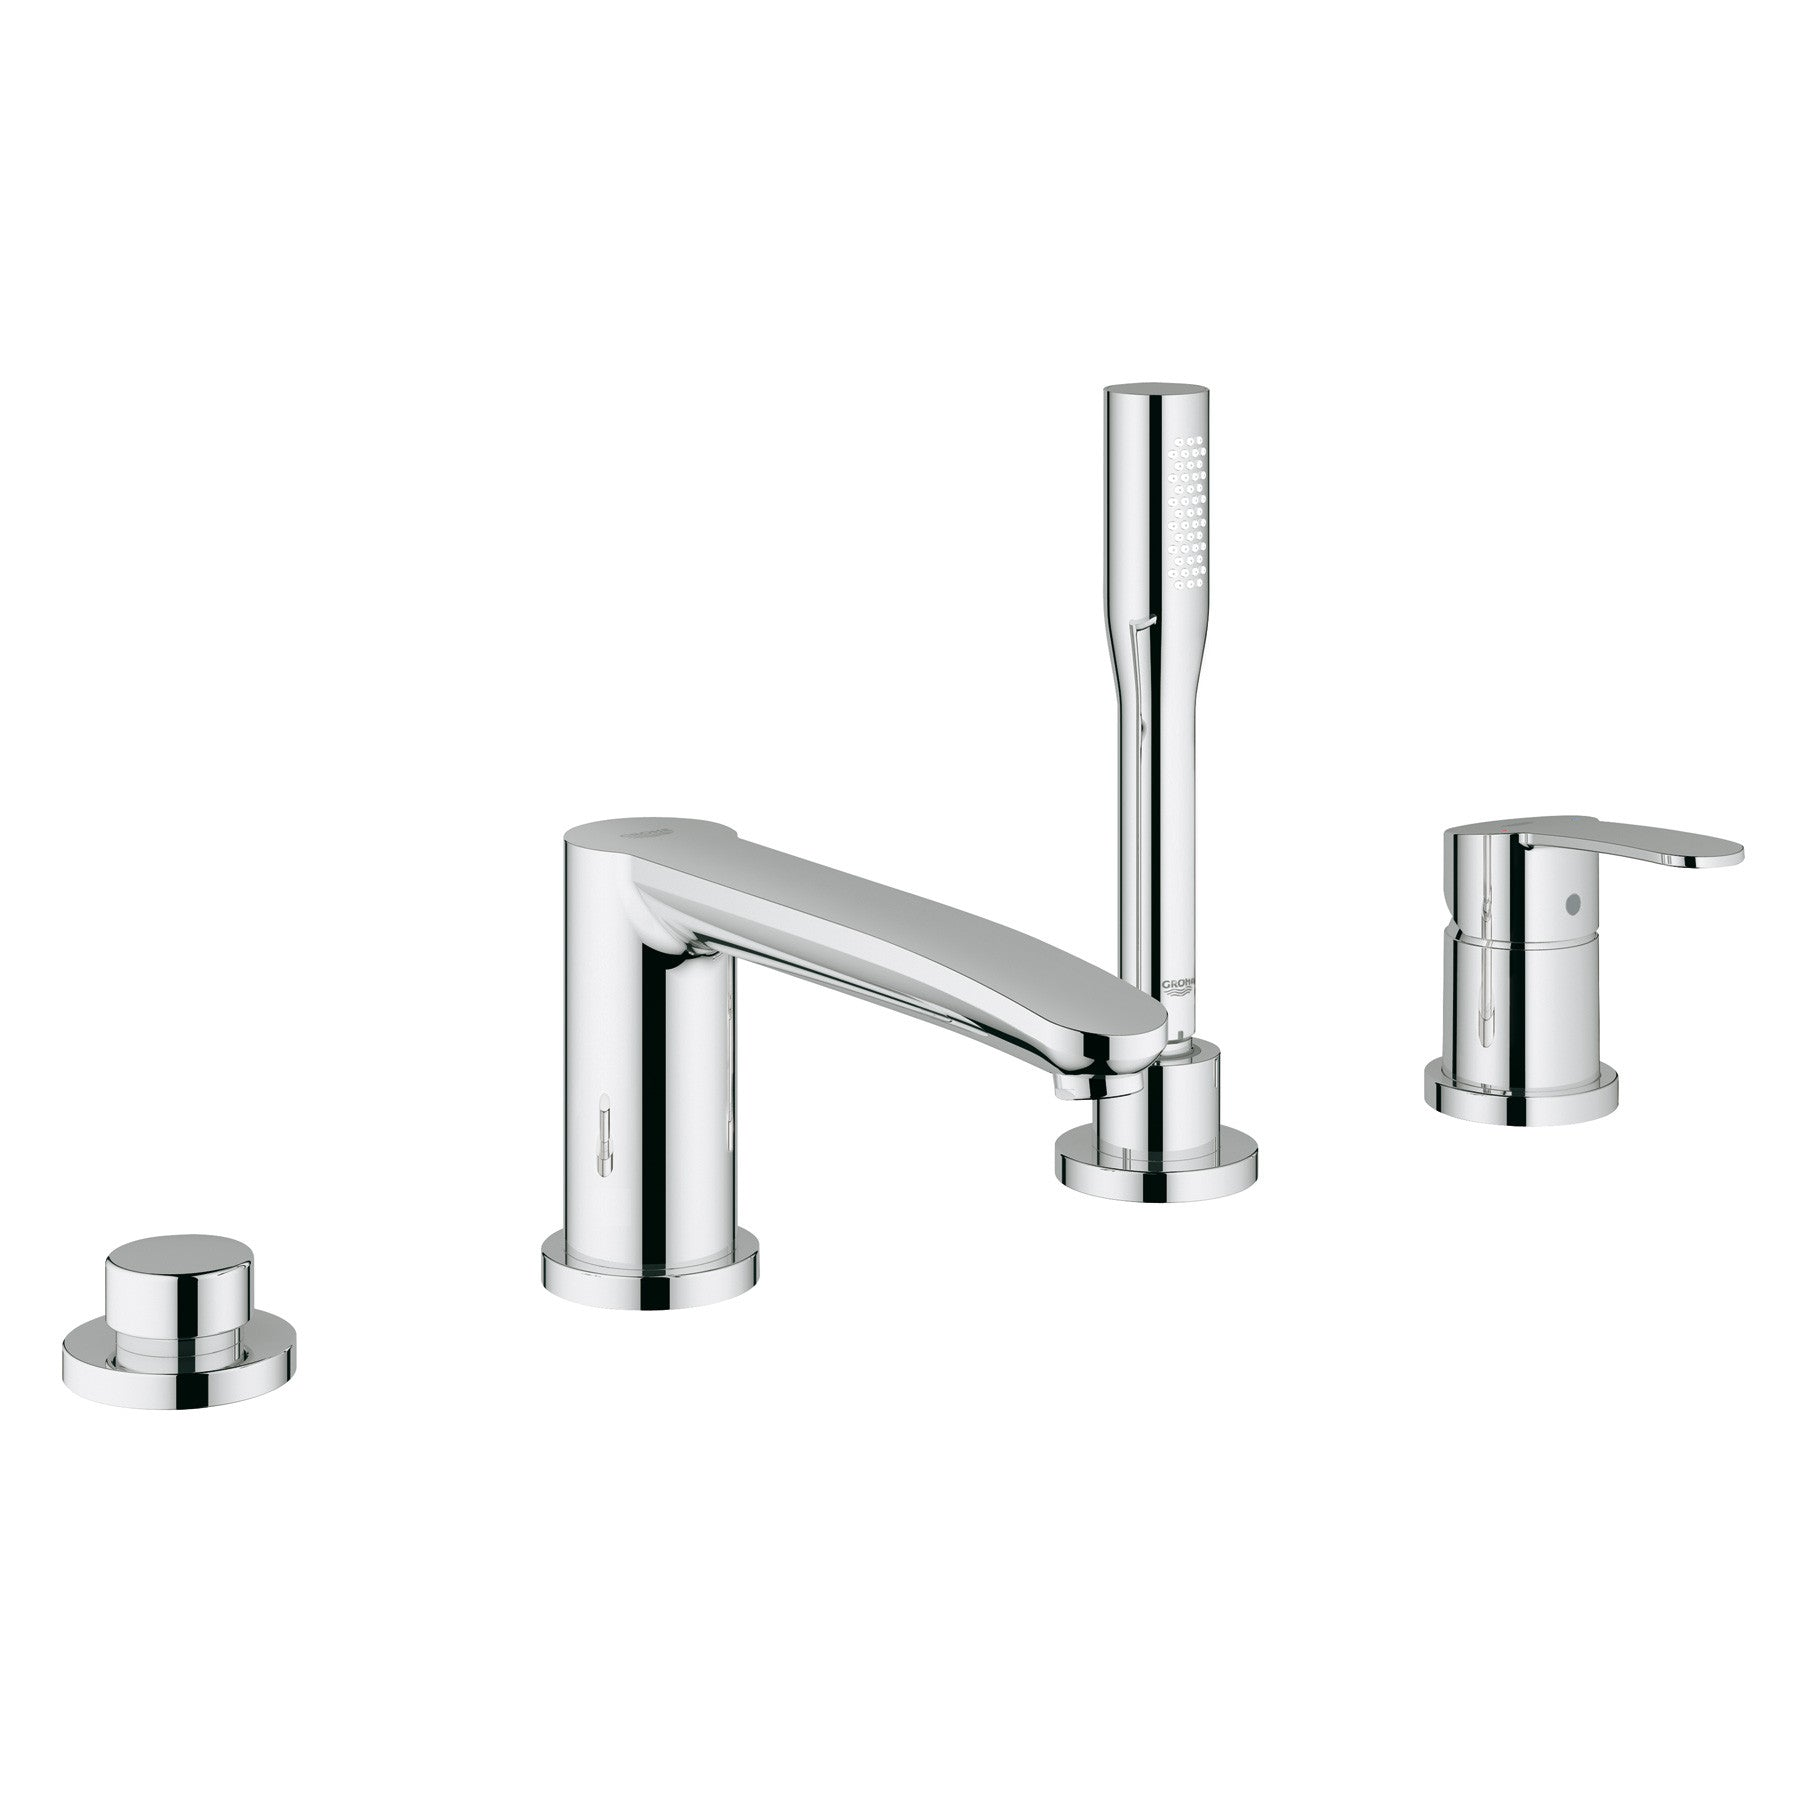 HD wallpapers bathroom towel bars and accessories